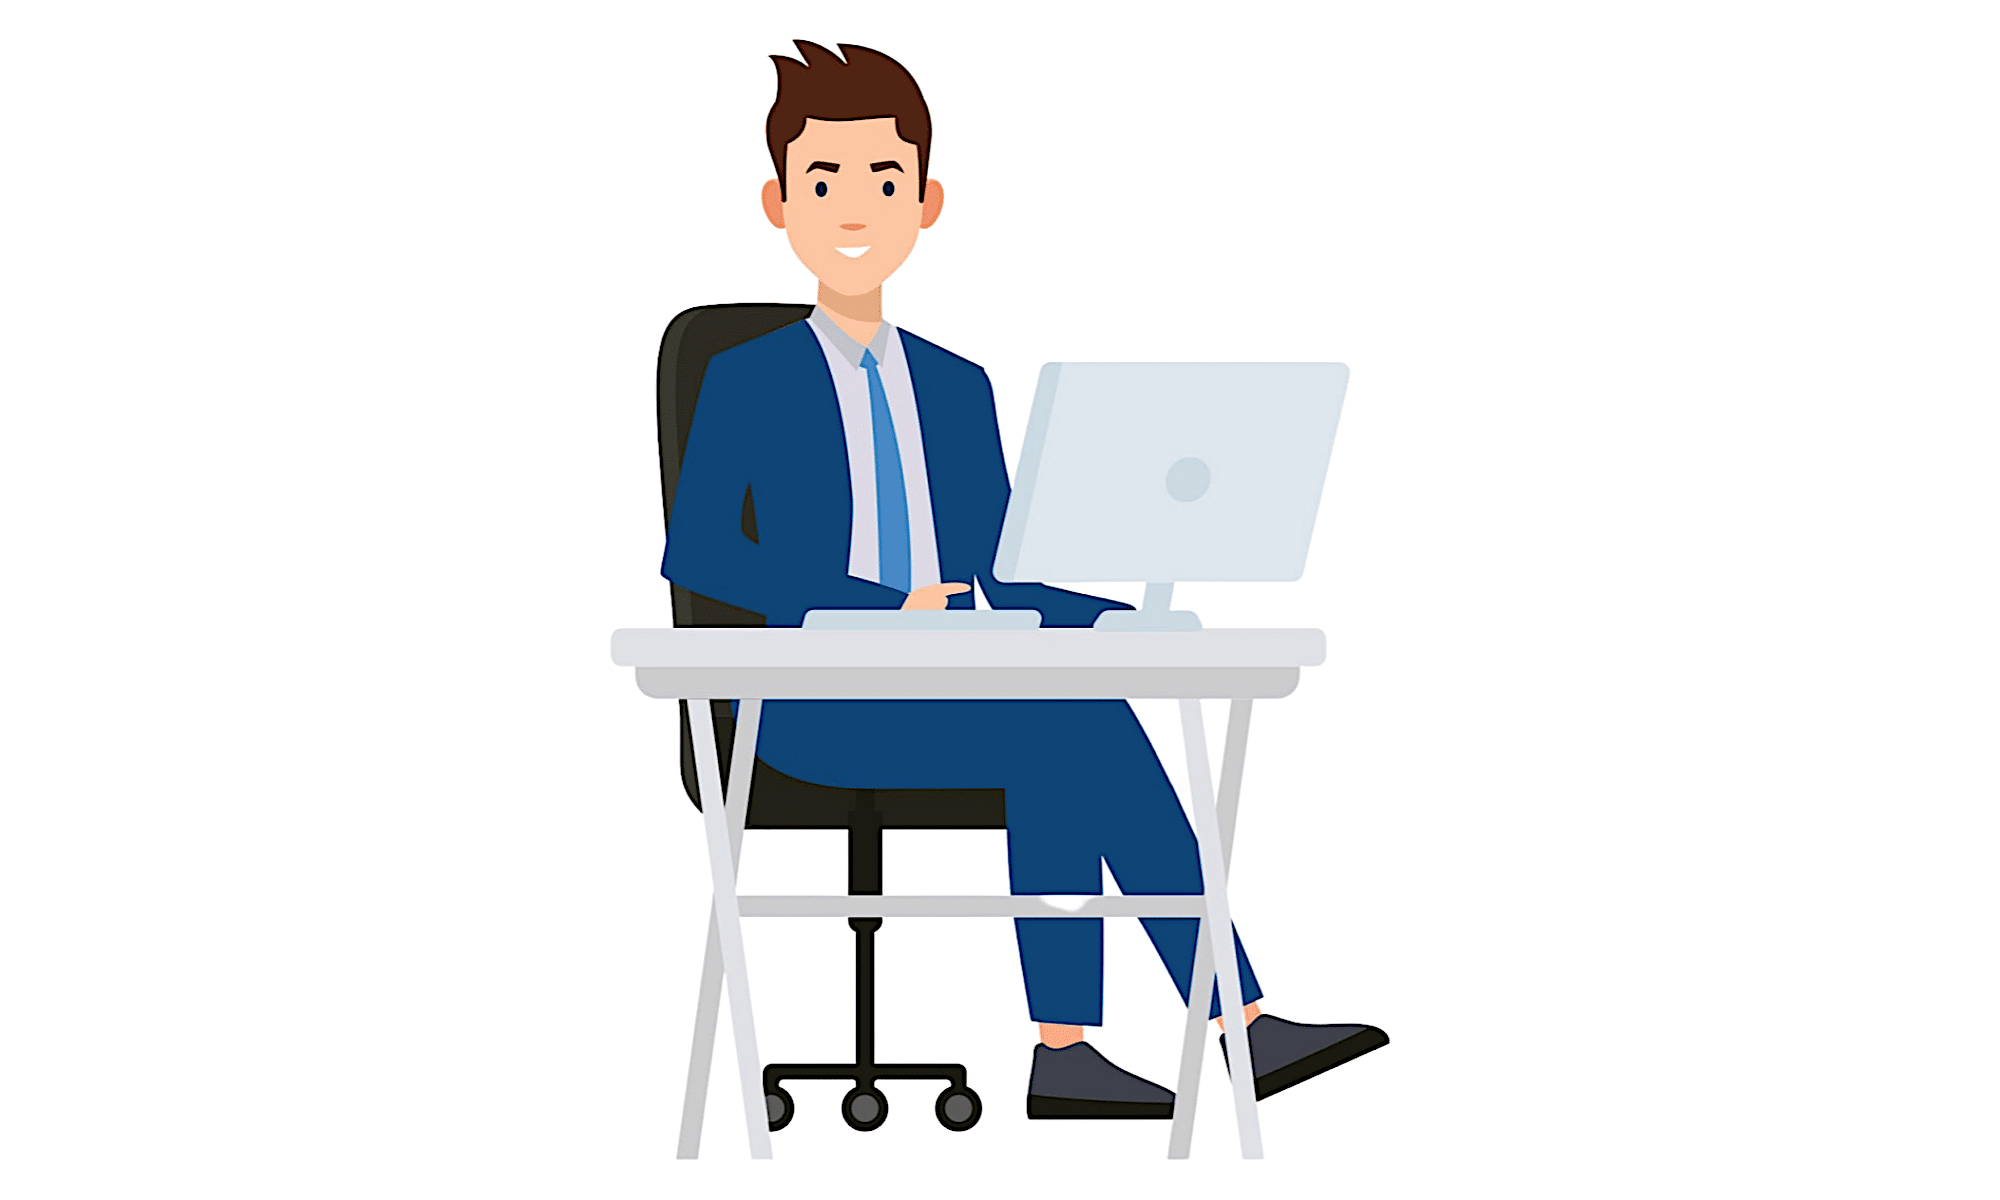 Graphic of man at desk with computer